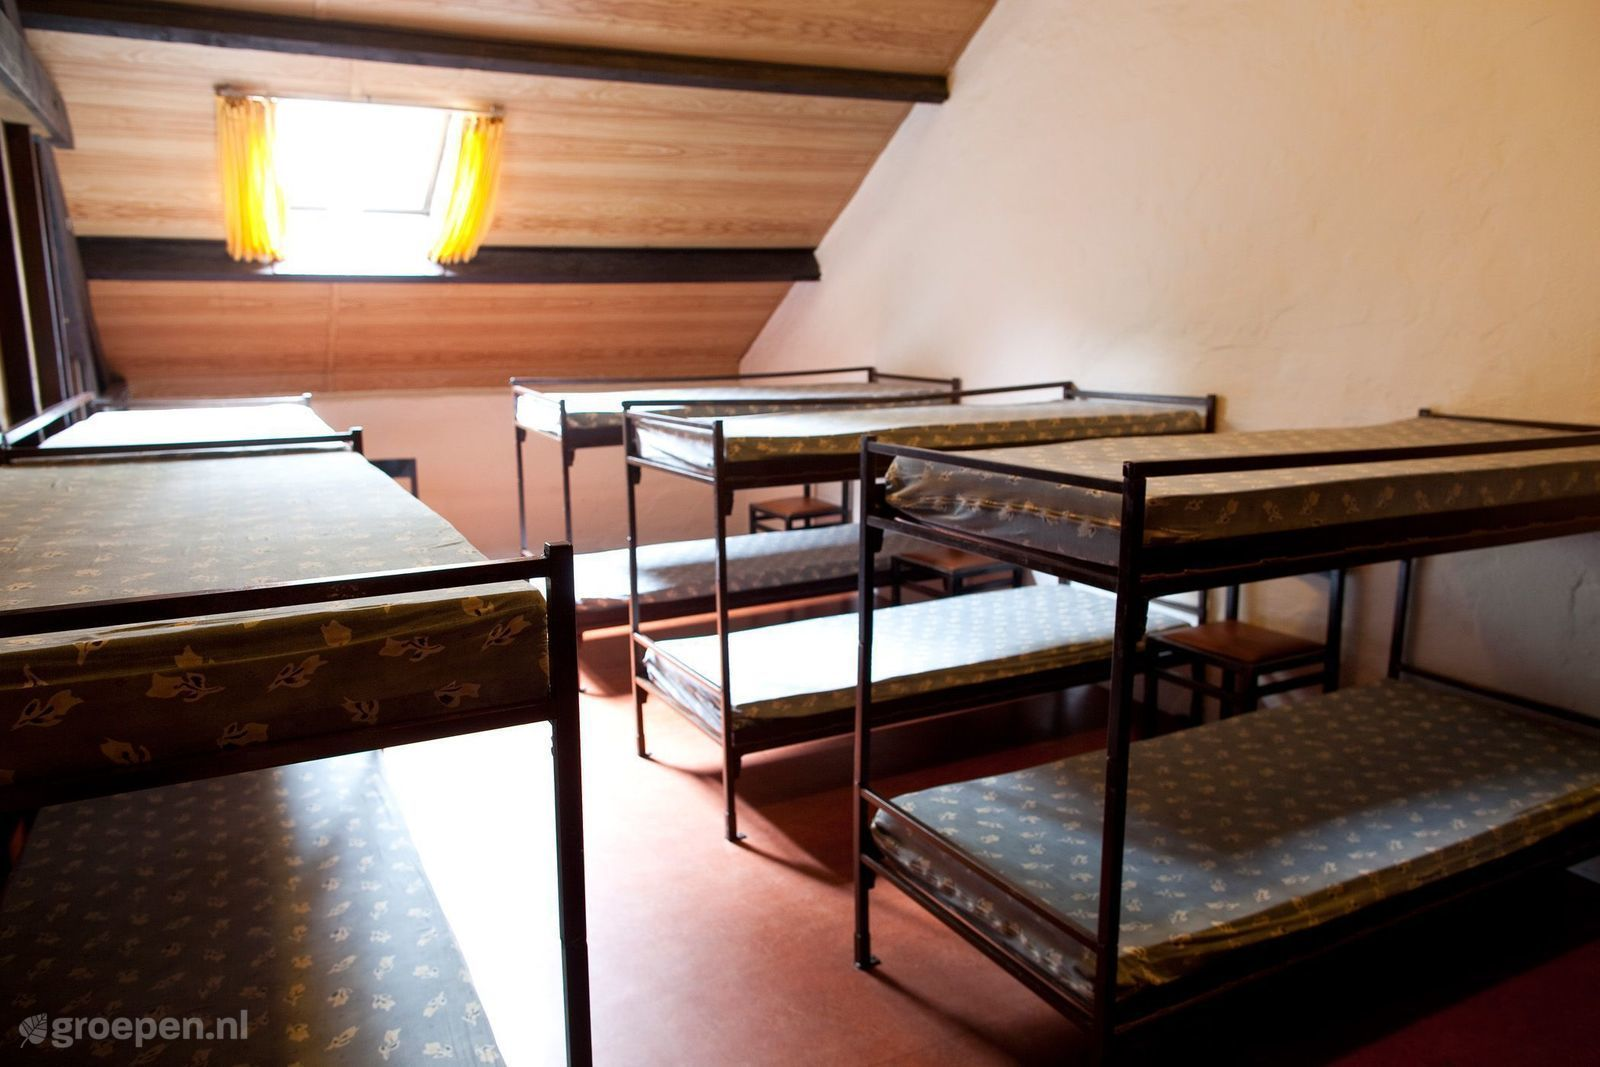 Group accommodation Baarschot